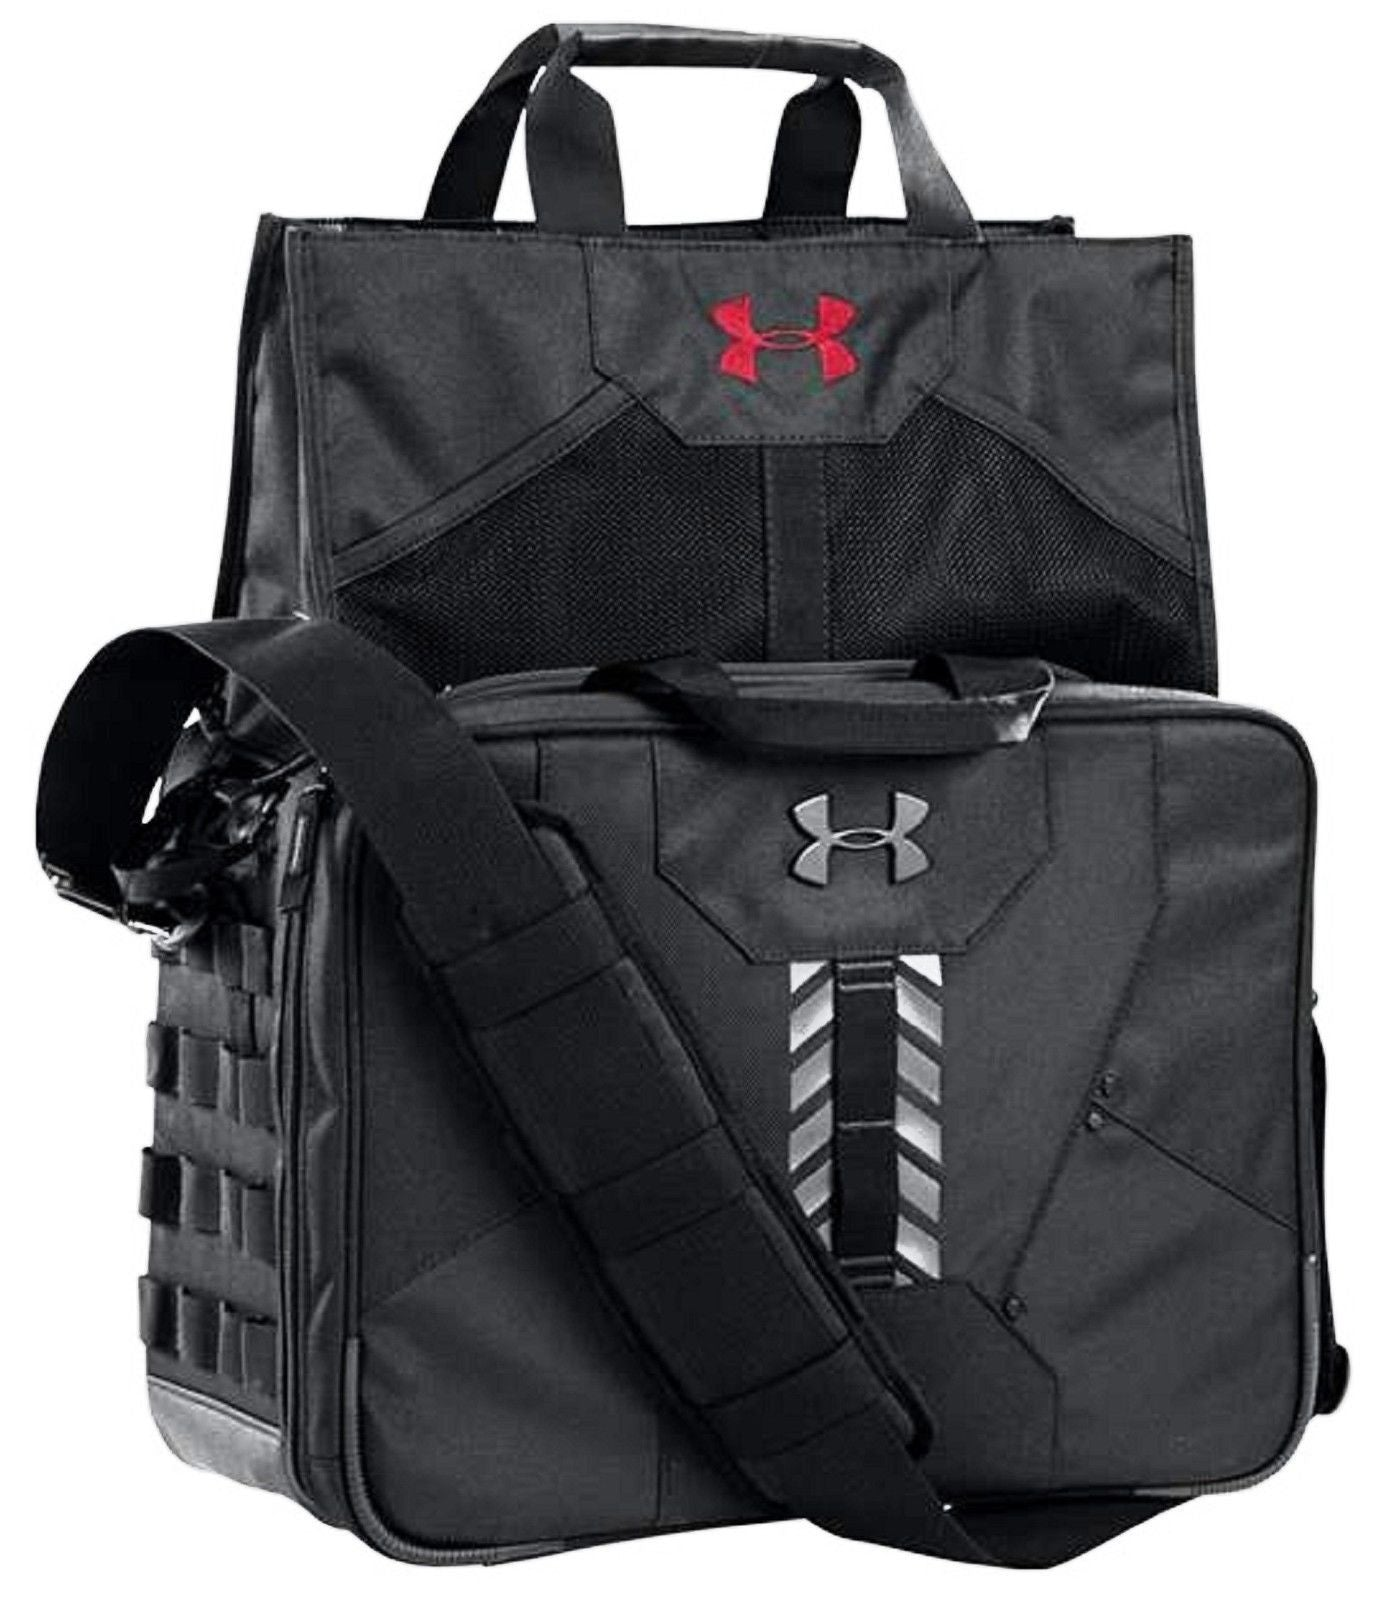 c1db12c2569 Under Armour Tactical Range & Field Bag - UA Black MOLLE Dropdown Bag  1242673